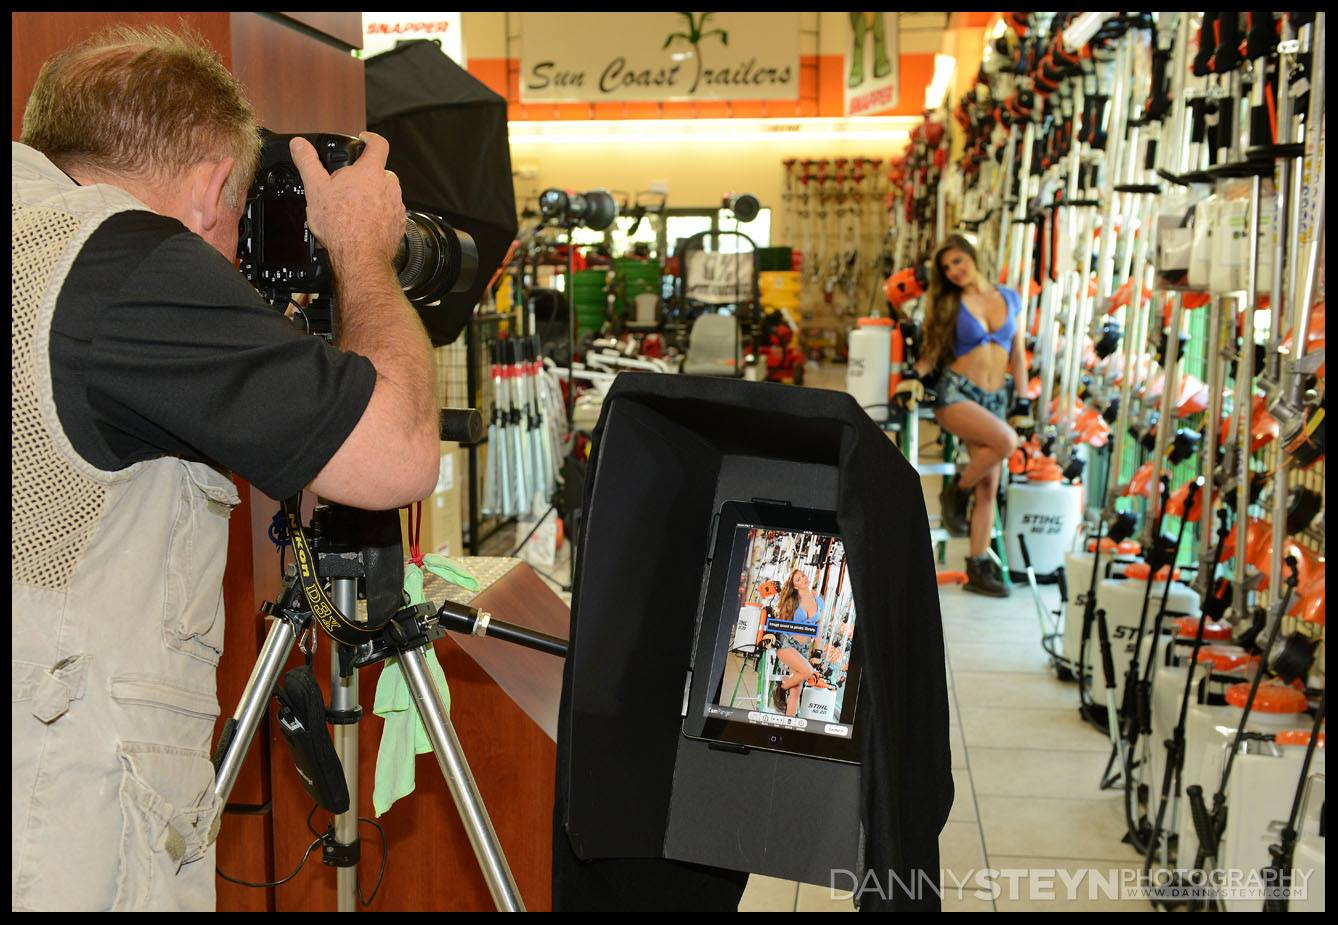 Wireless previewing images on iPad tablet using CamRanger attached to Nikon D3x